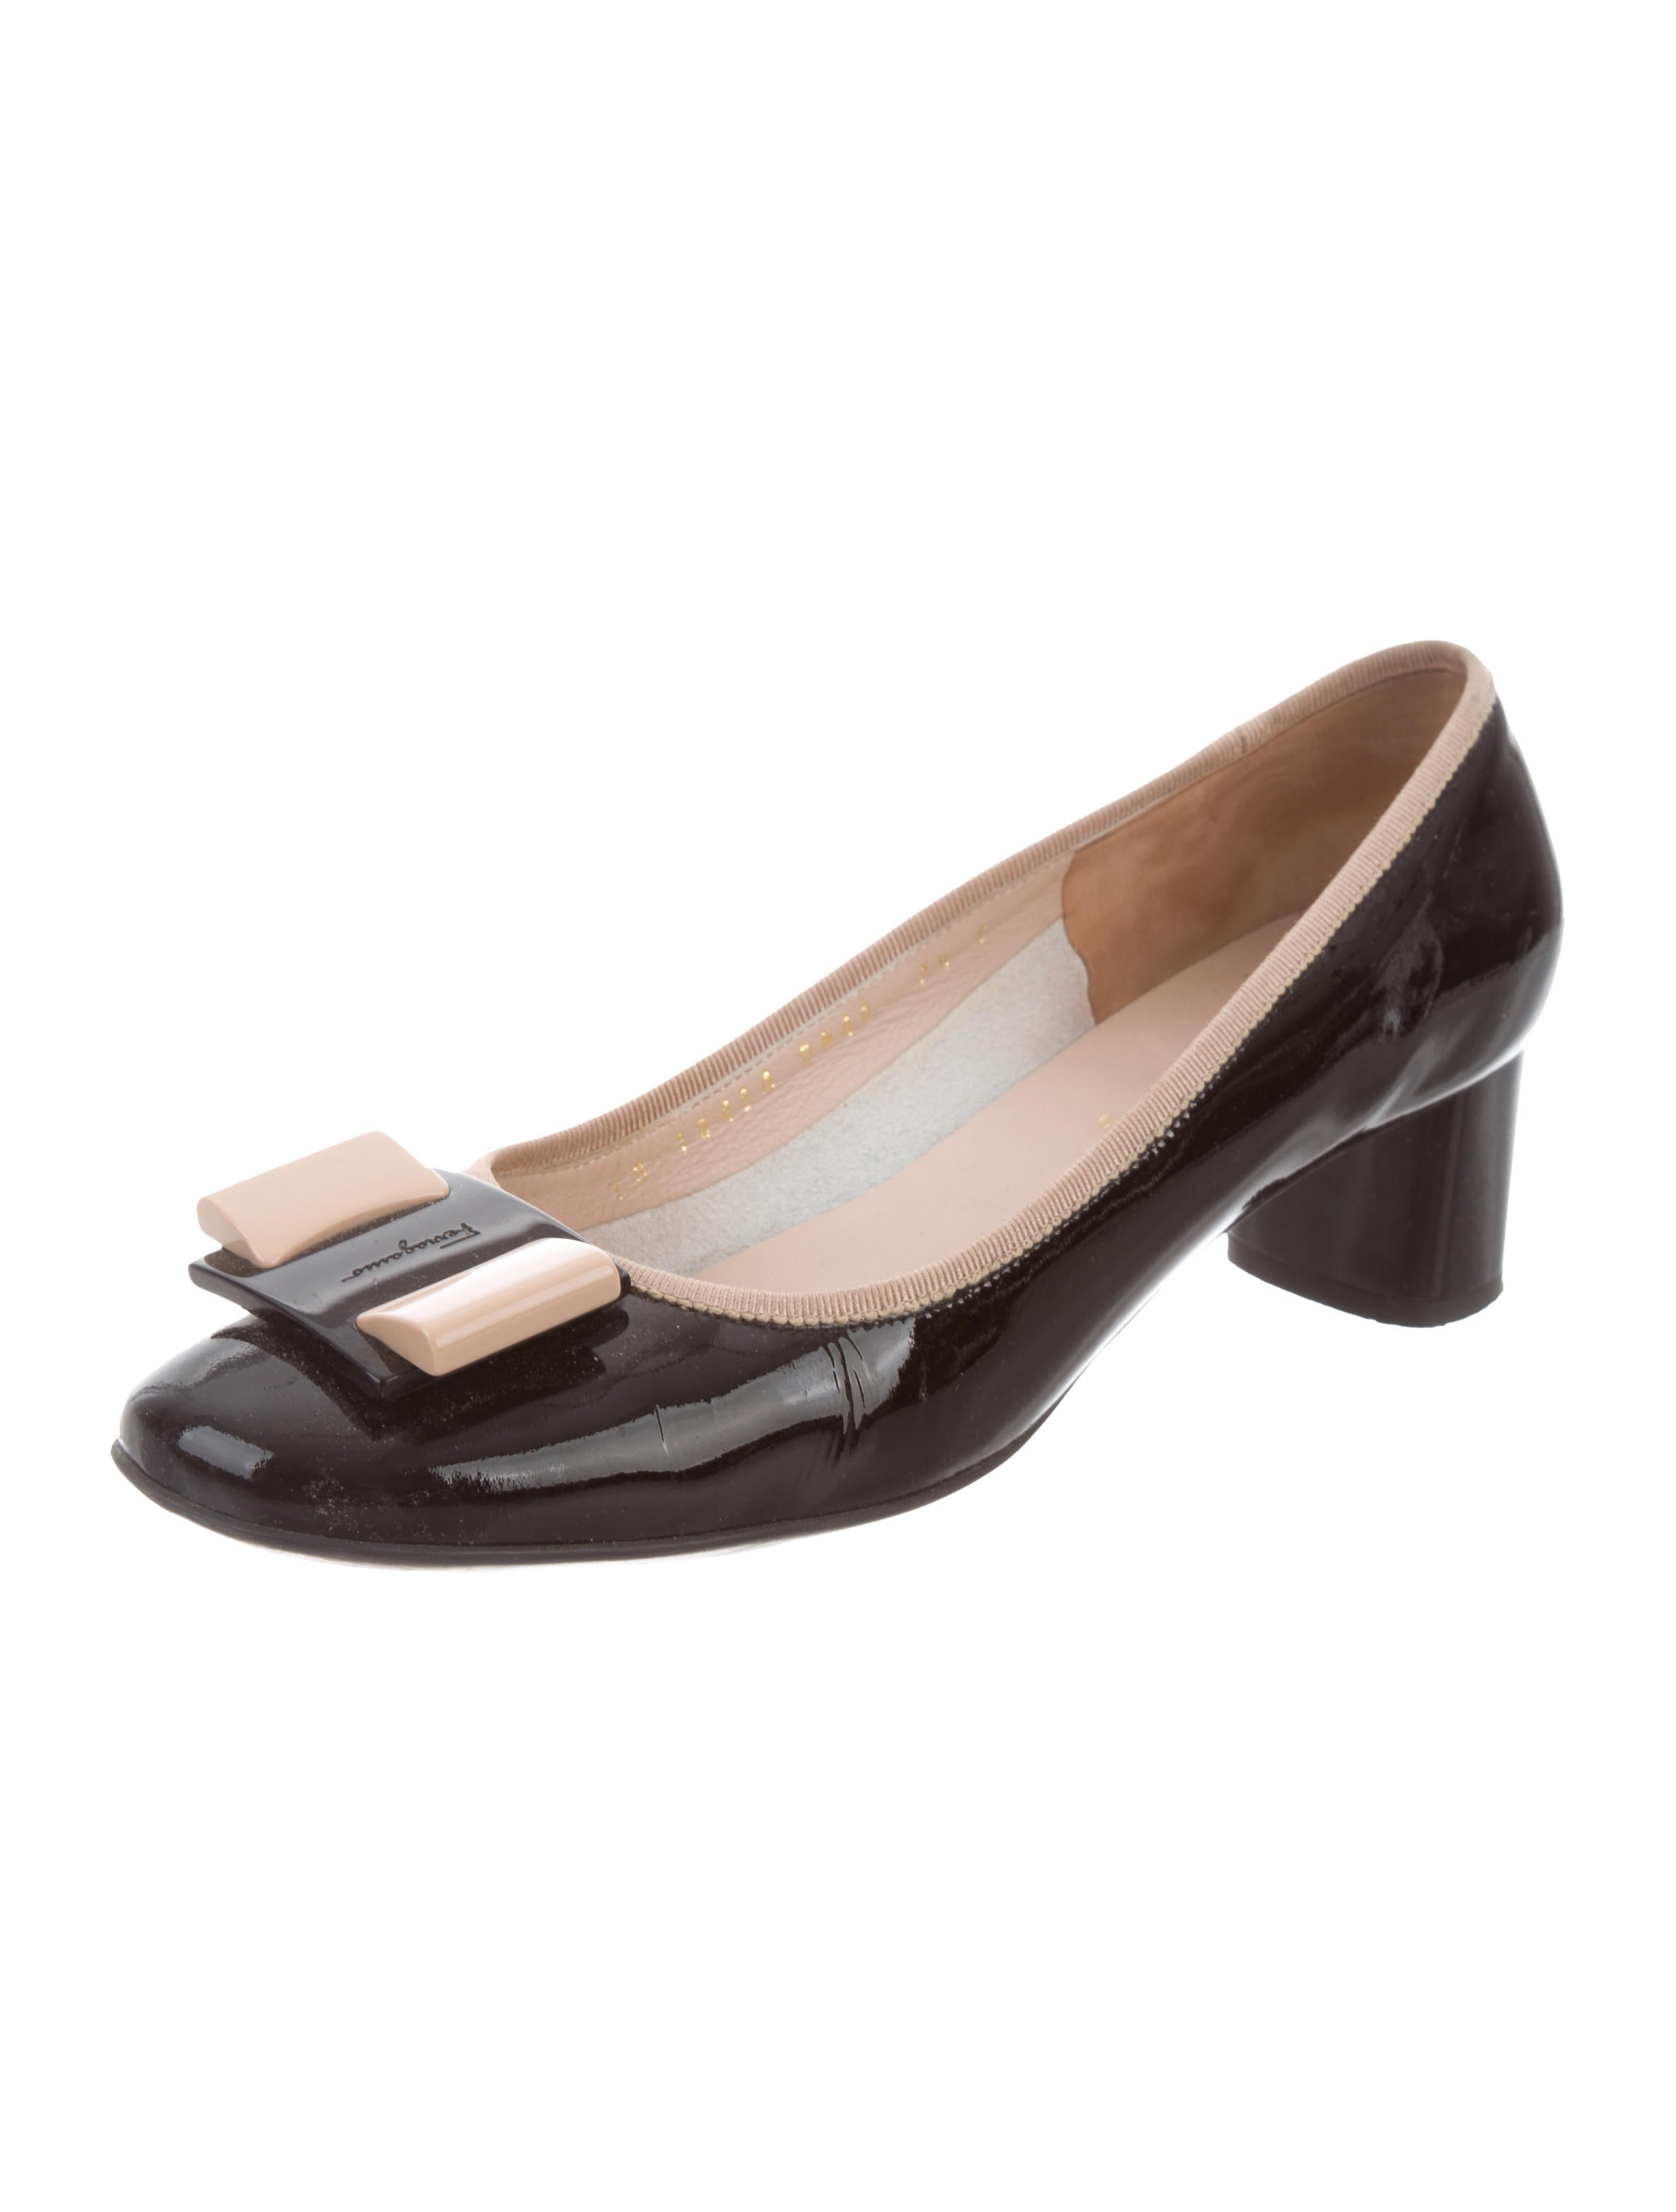 Salvatore Ferragamo My Flair Round-Toe Pumps from china free shipping low price cheap marketable pGTpyD7